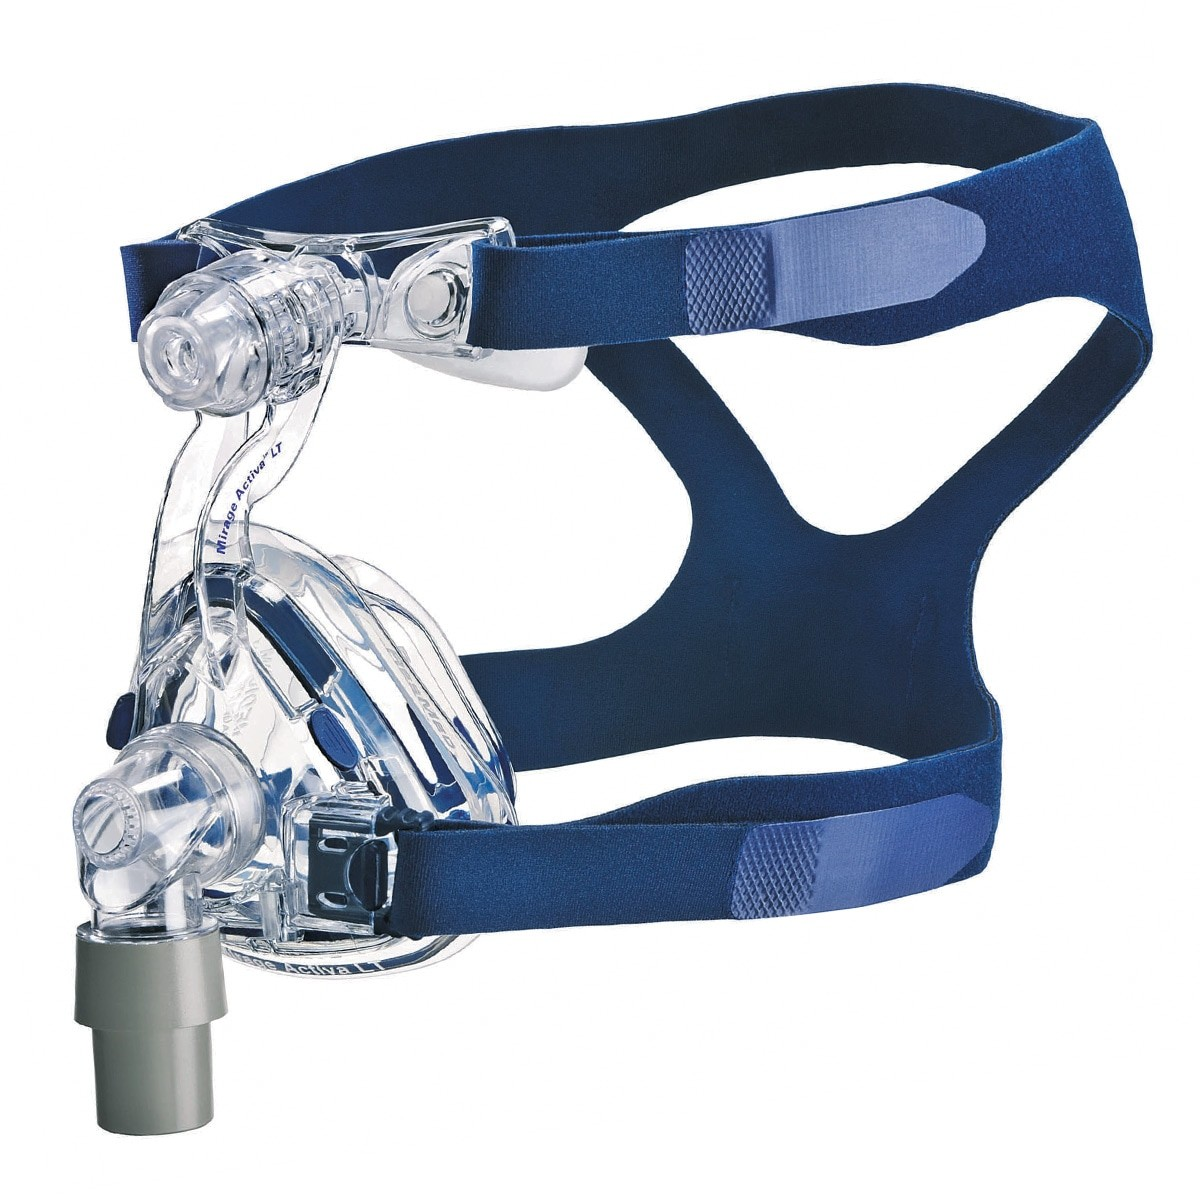 ResMed Mirage Activa LT CPAP Mask with Headgear